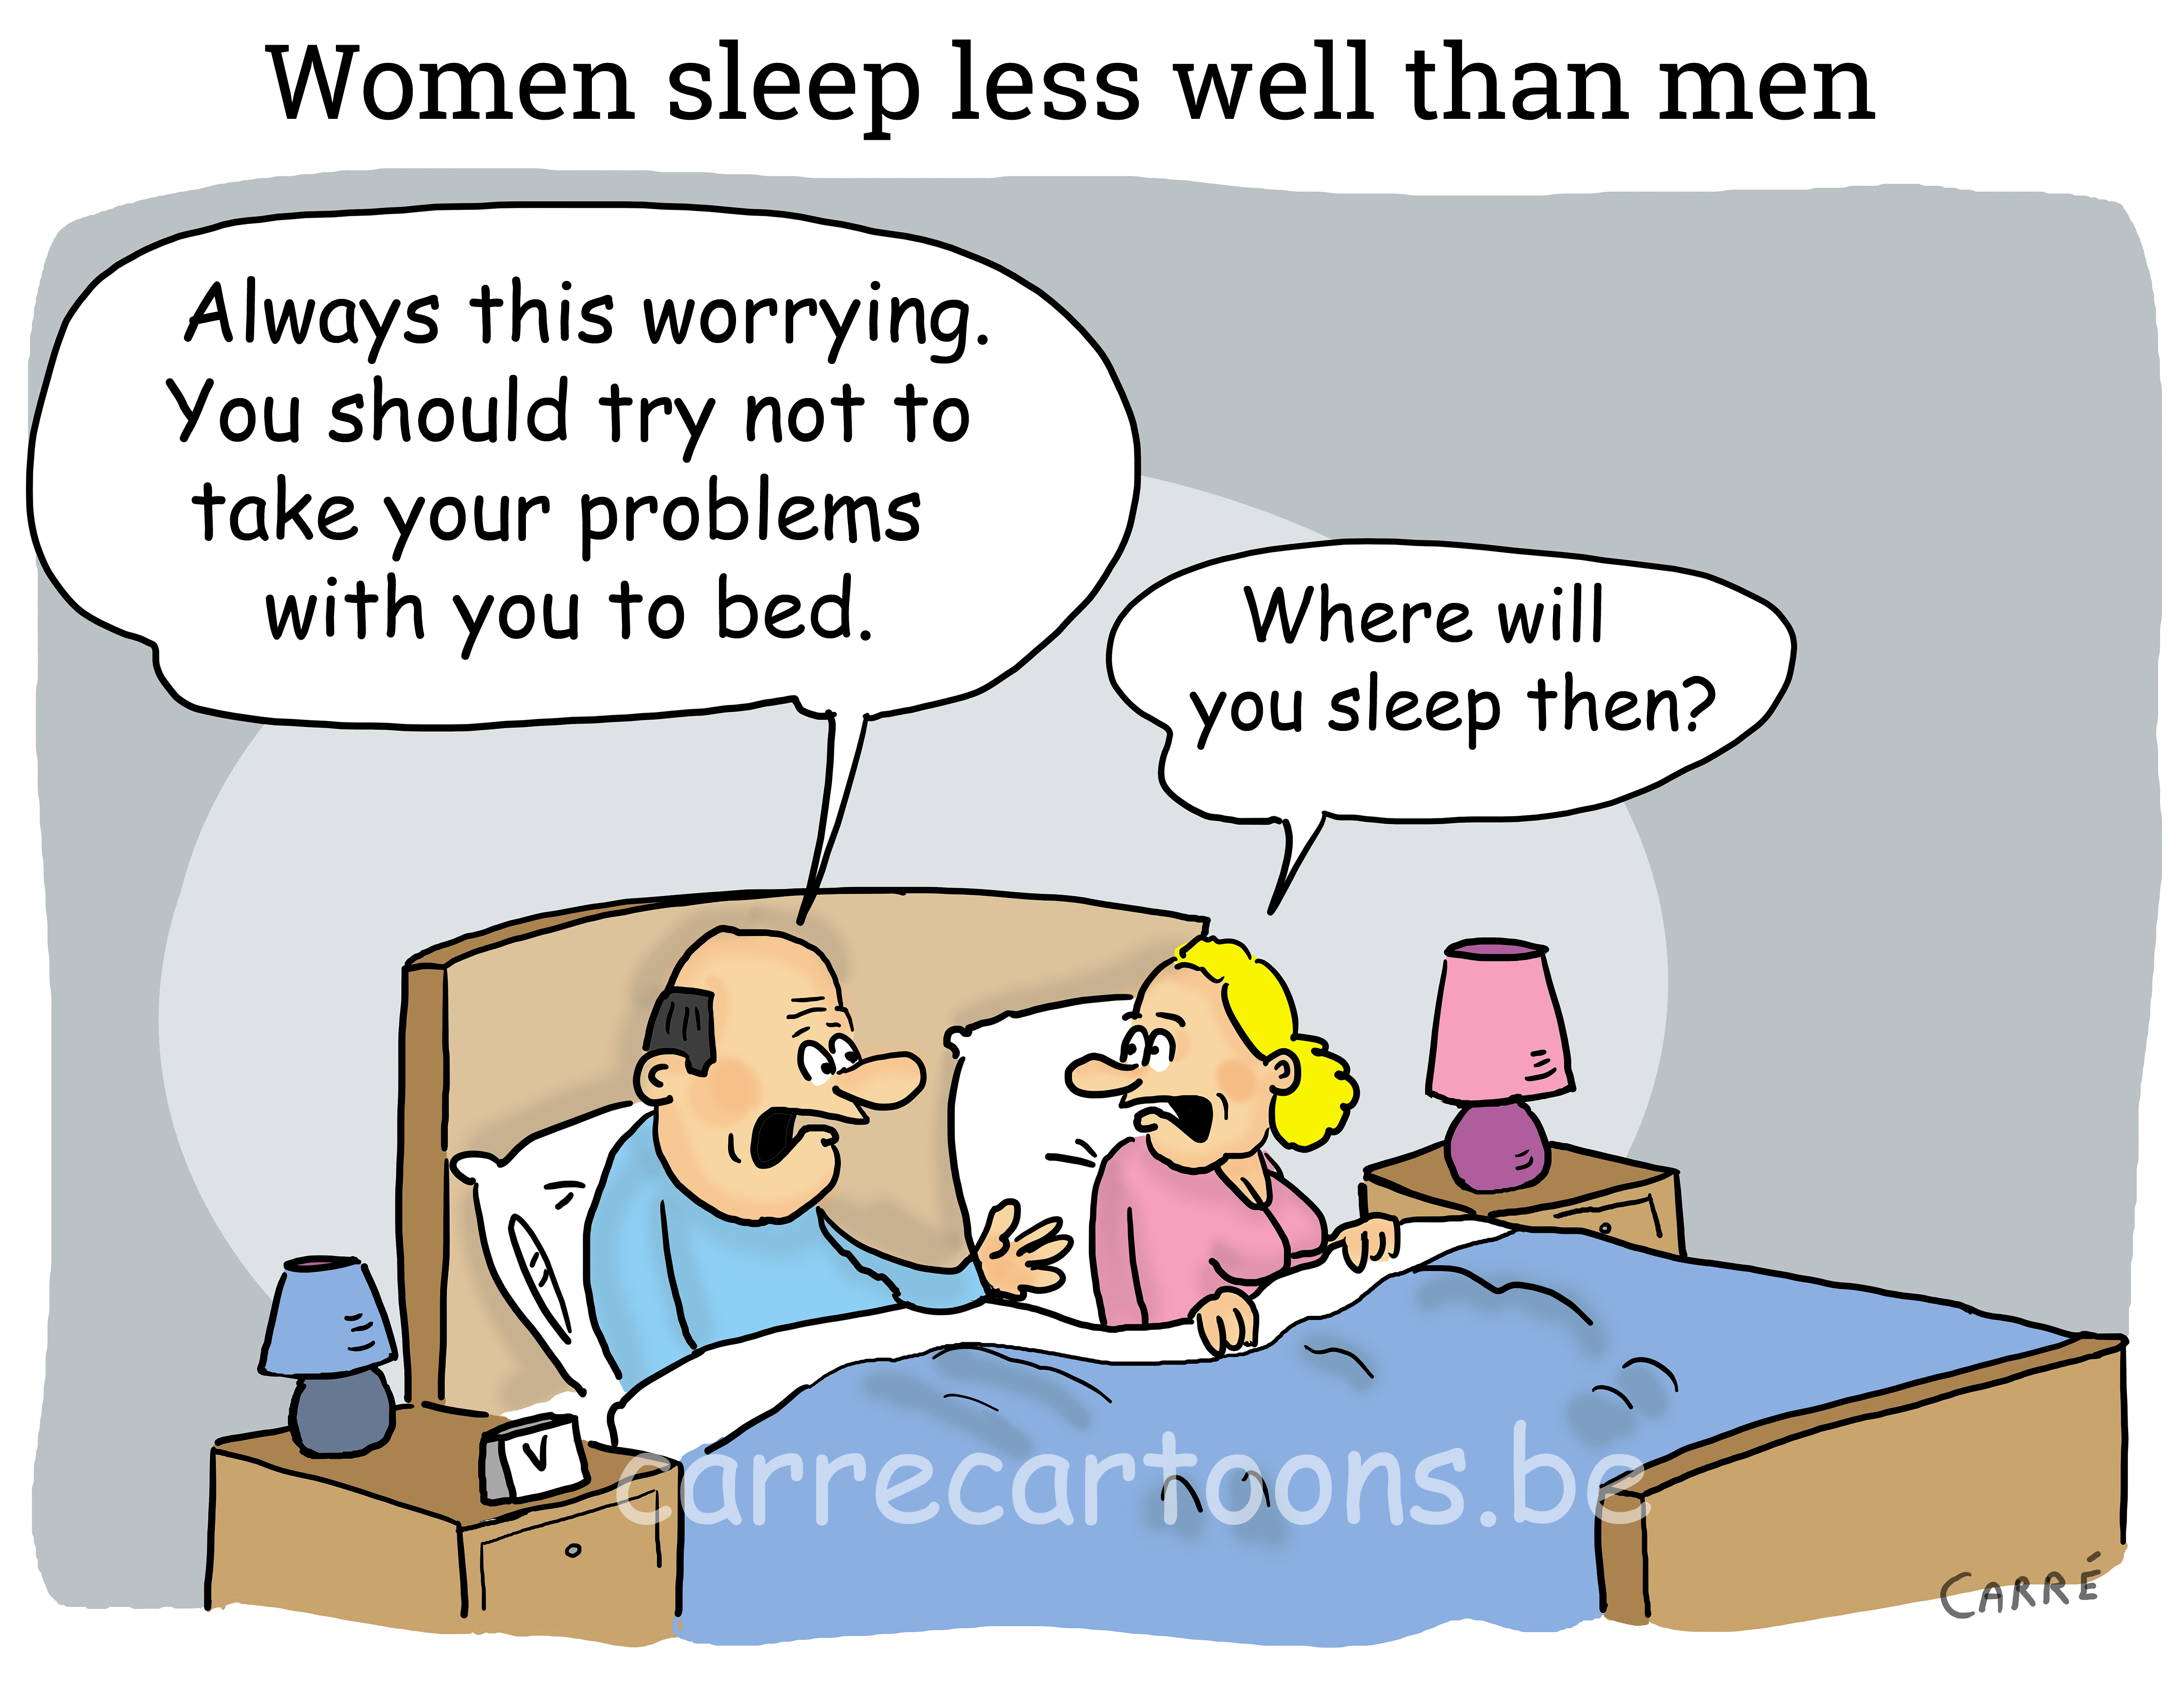 cs21 women sleep less wellwm.jpg